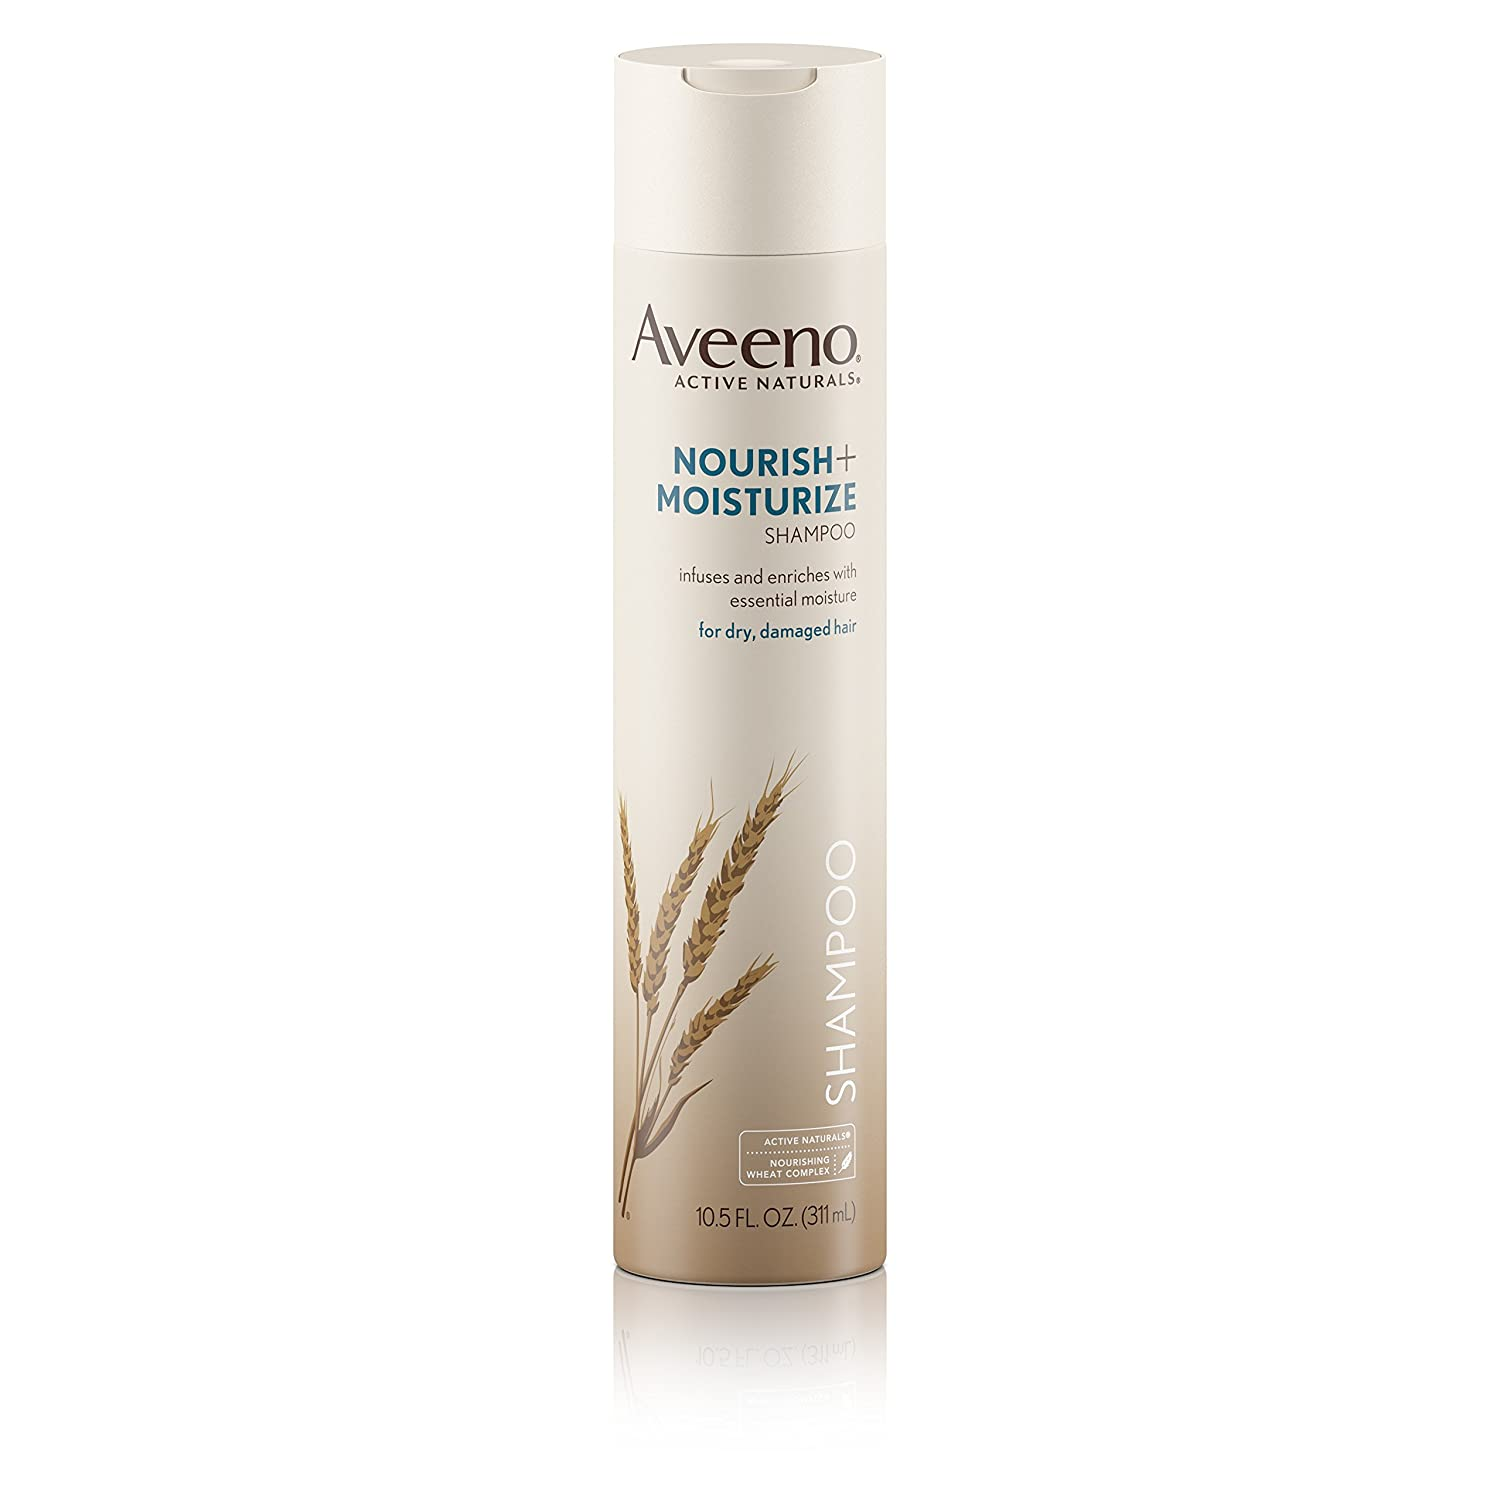 Aveeno Nourish+ Moisturize Gentle Hydrating Shampoo, 10.5 fl. oz (Pack of 2)